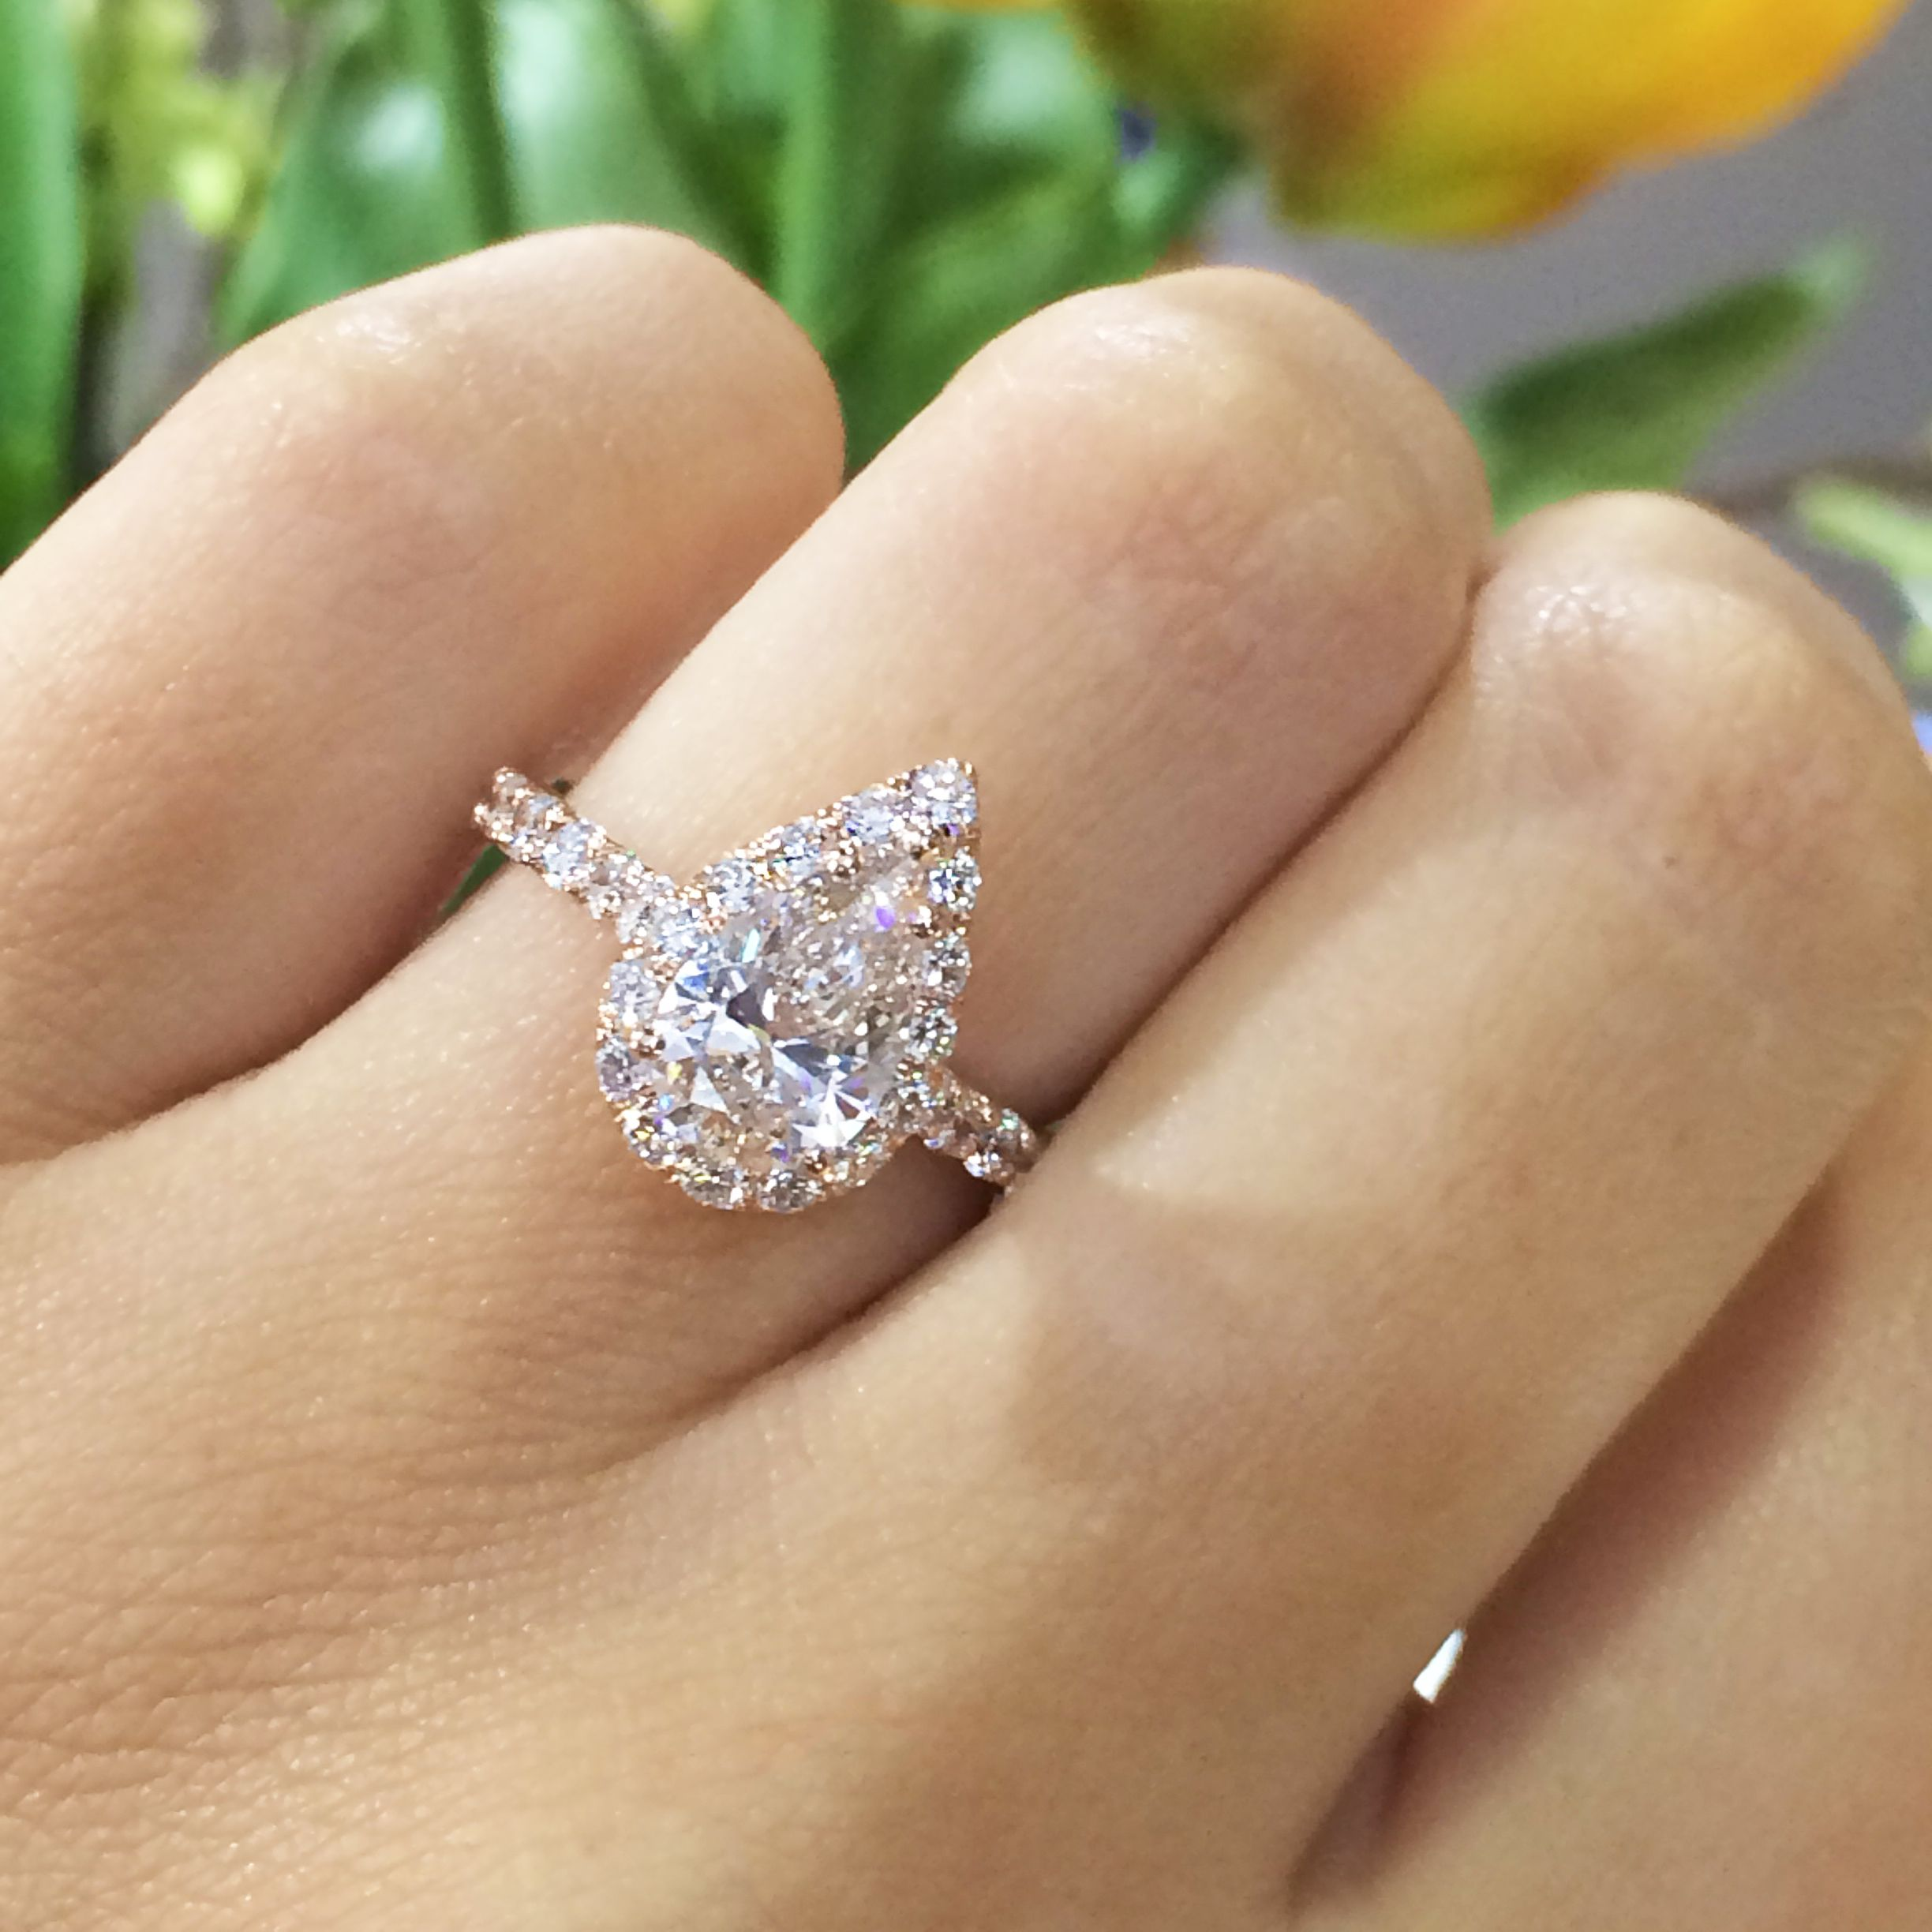 item carat silver rings color engagement elegant zircon women plated man gold fashion anel rose ring wholesale from jewelry round double zirconia crystal and for cubic in cut classic men fair wedding